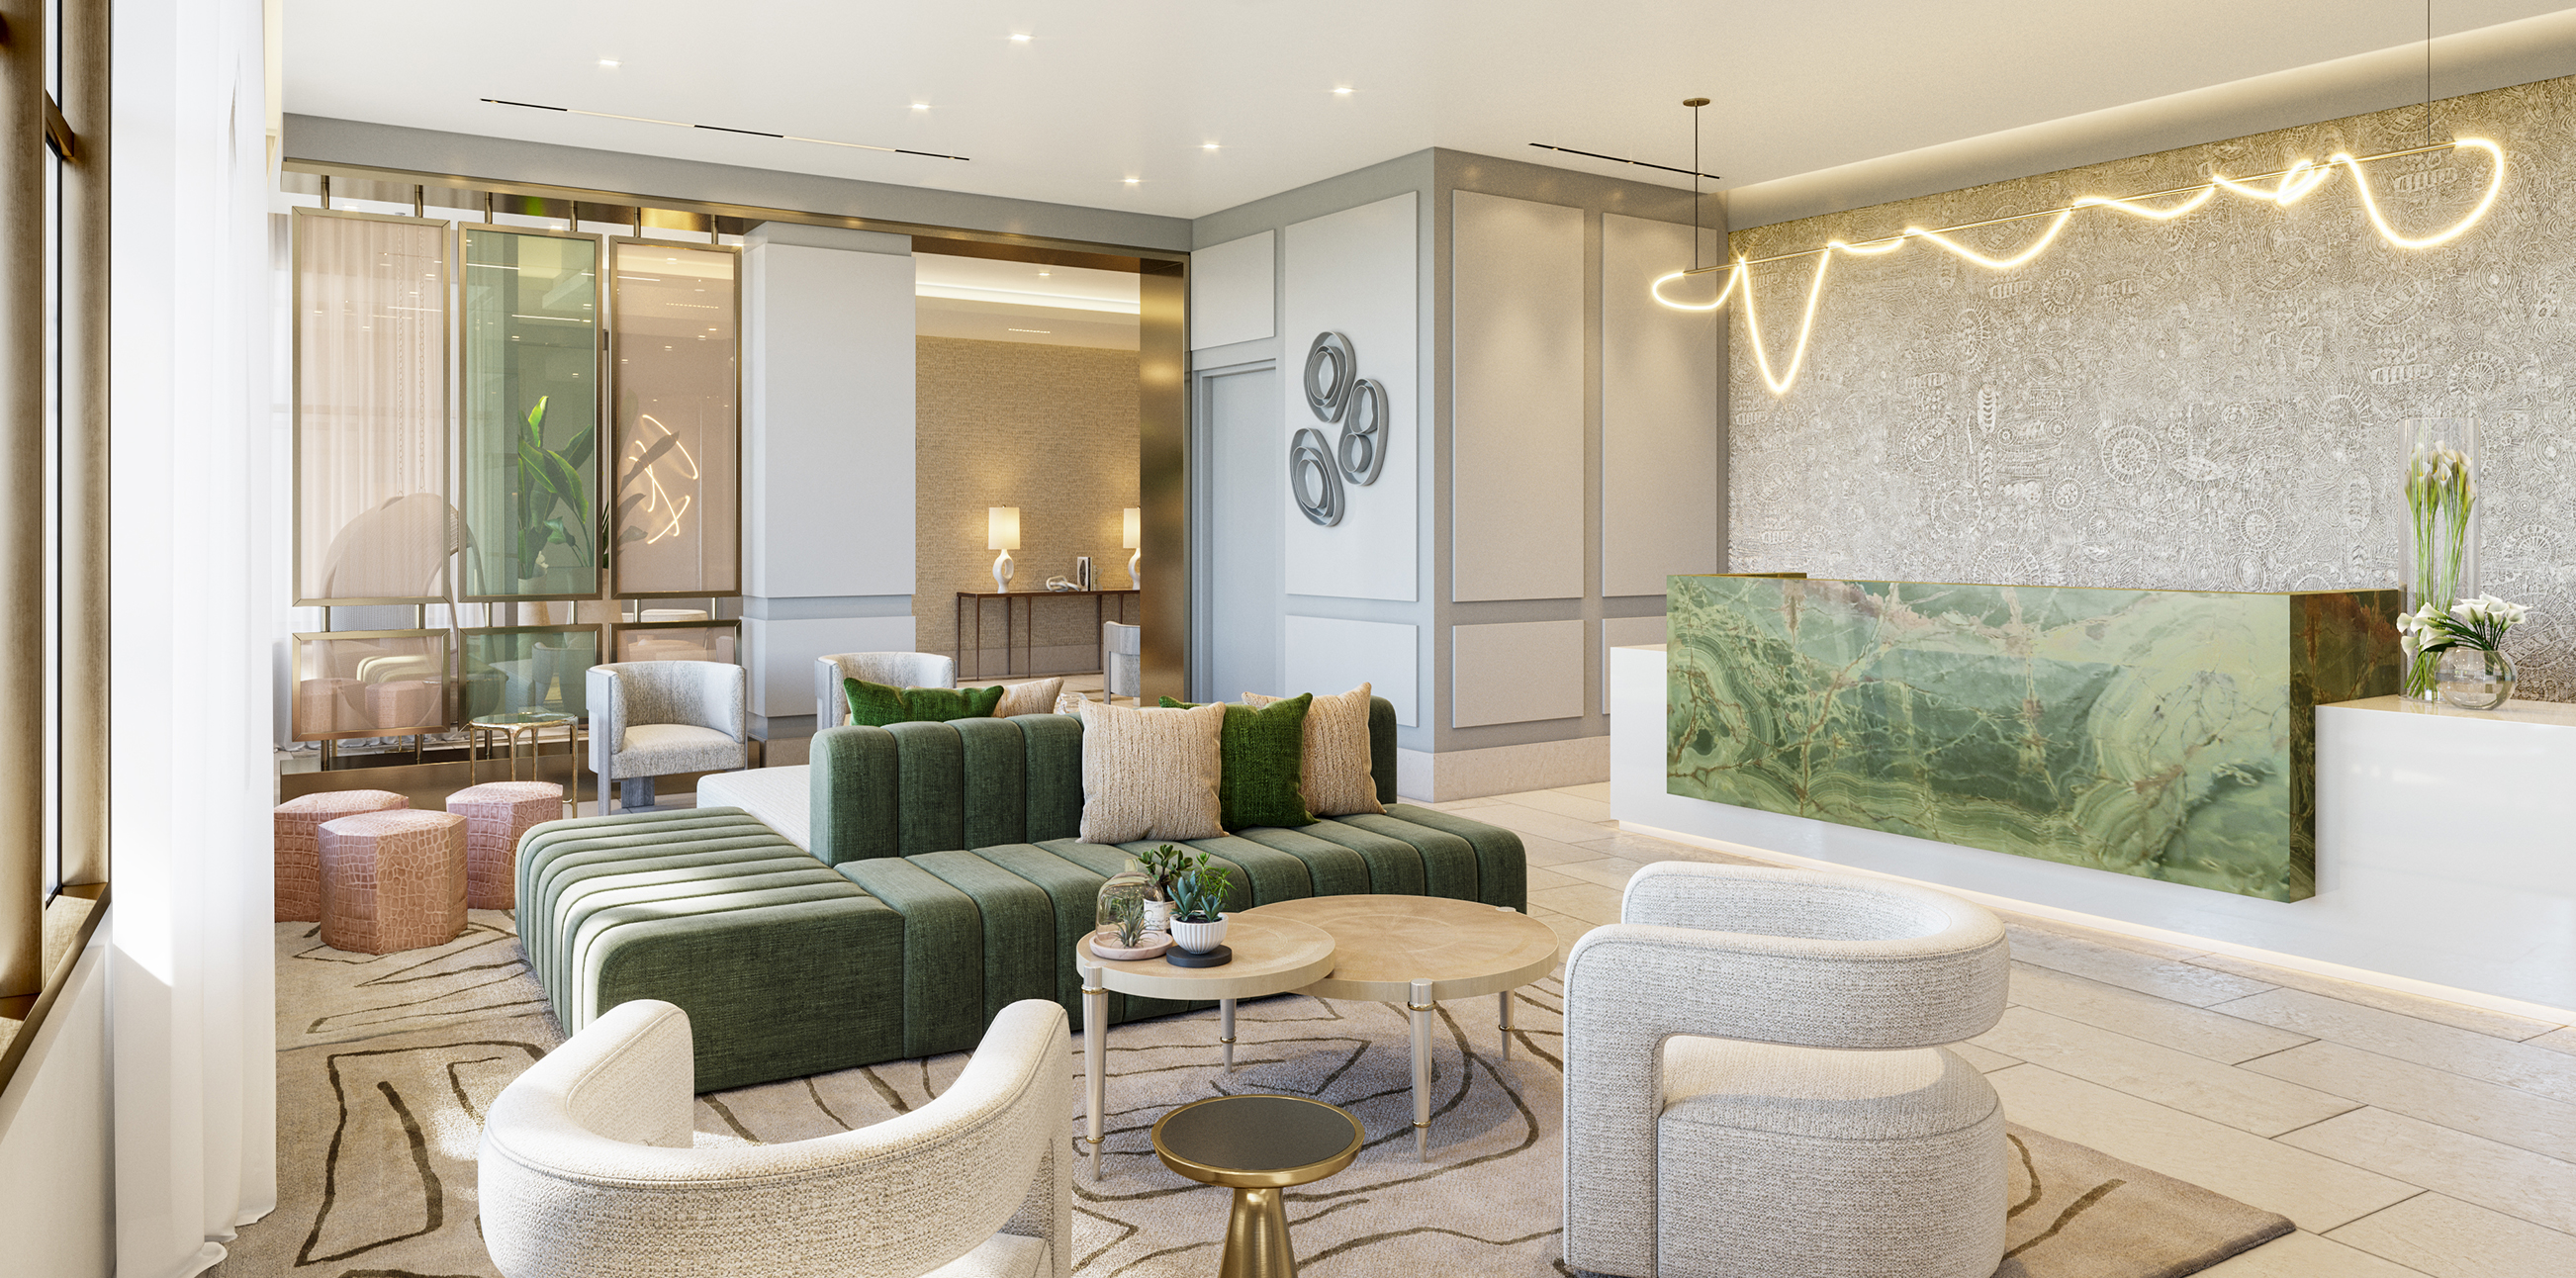 Stylish lobby with midcentury accents